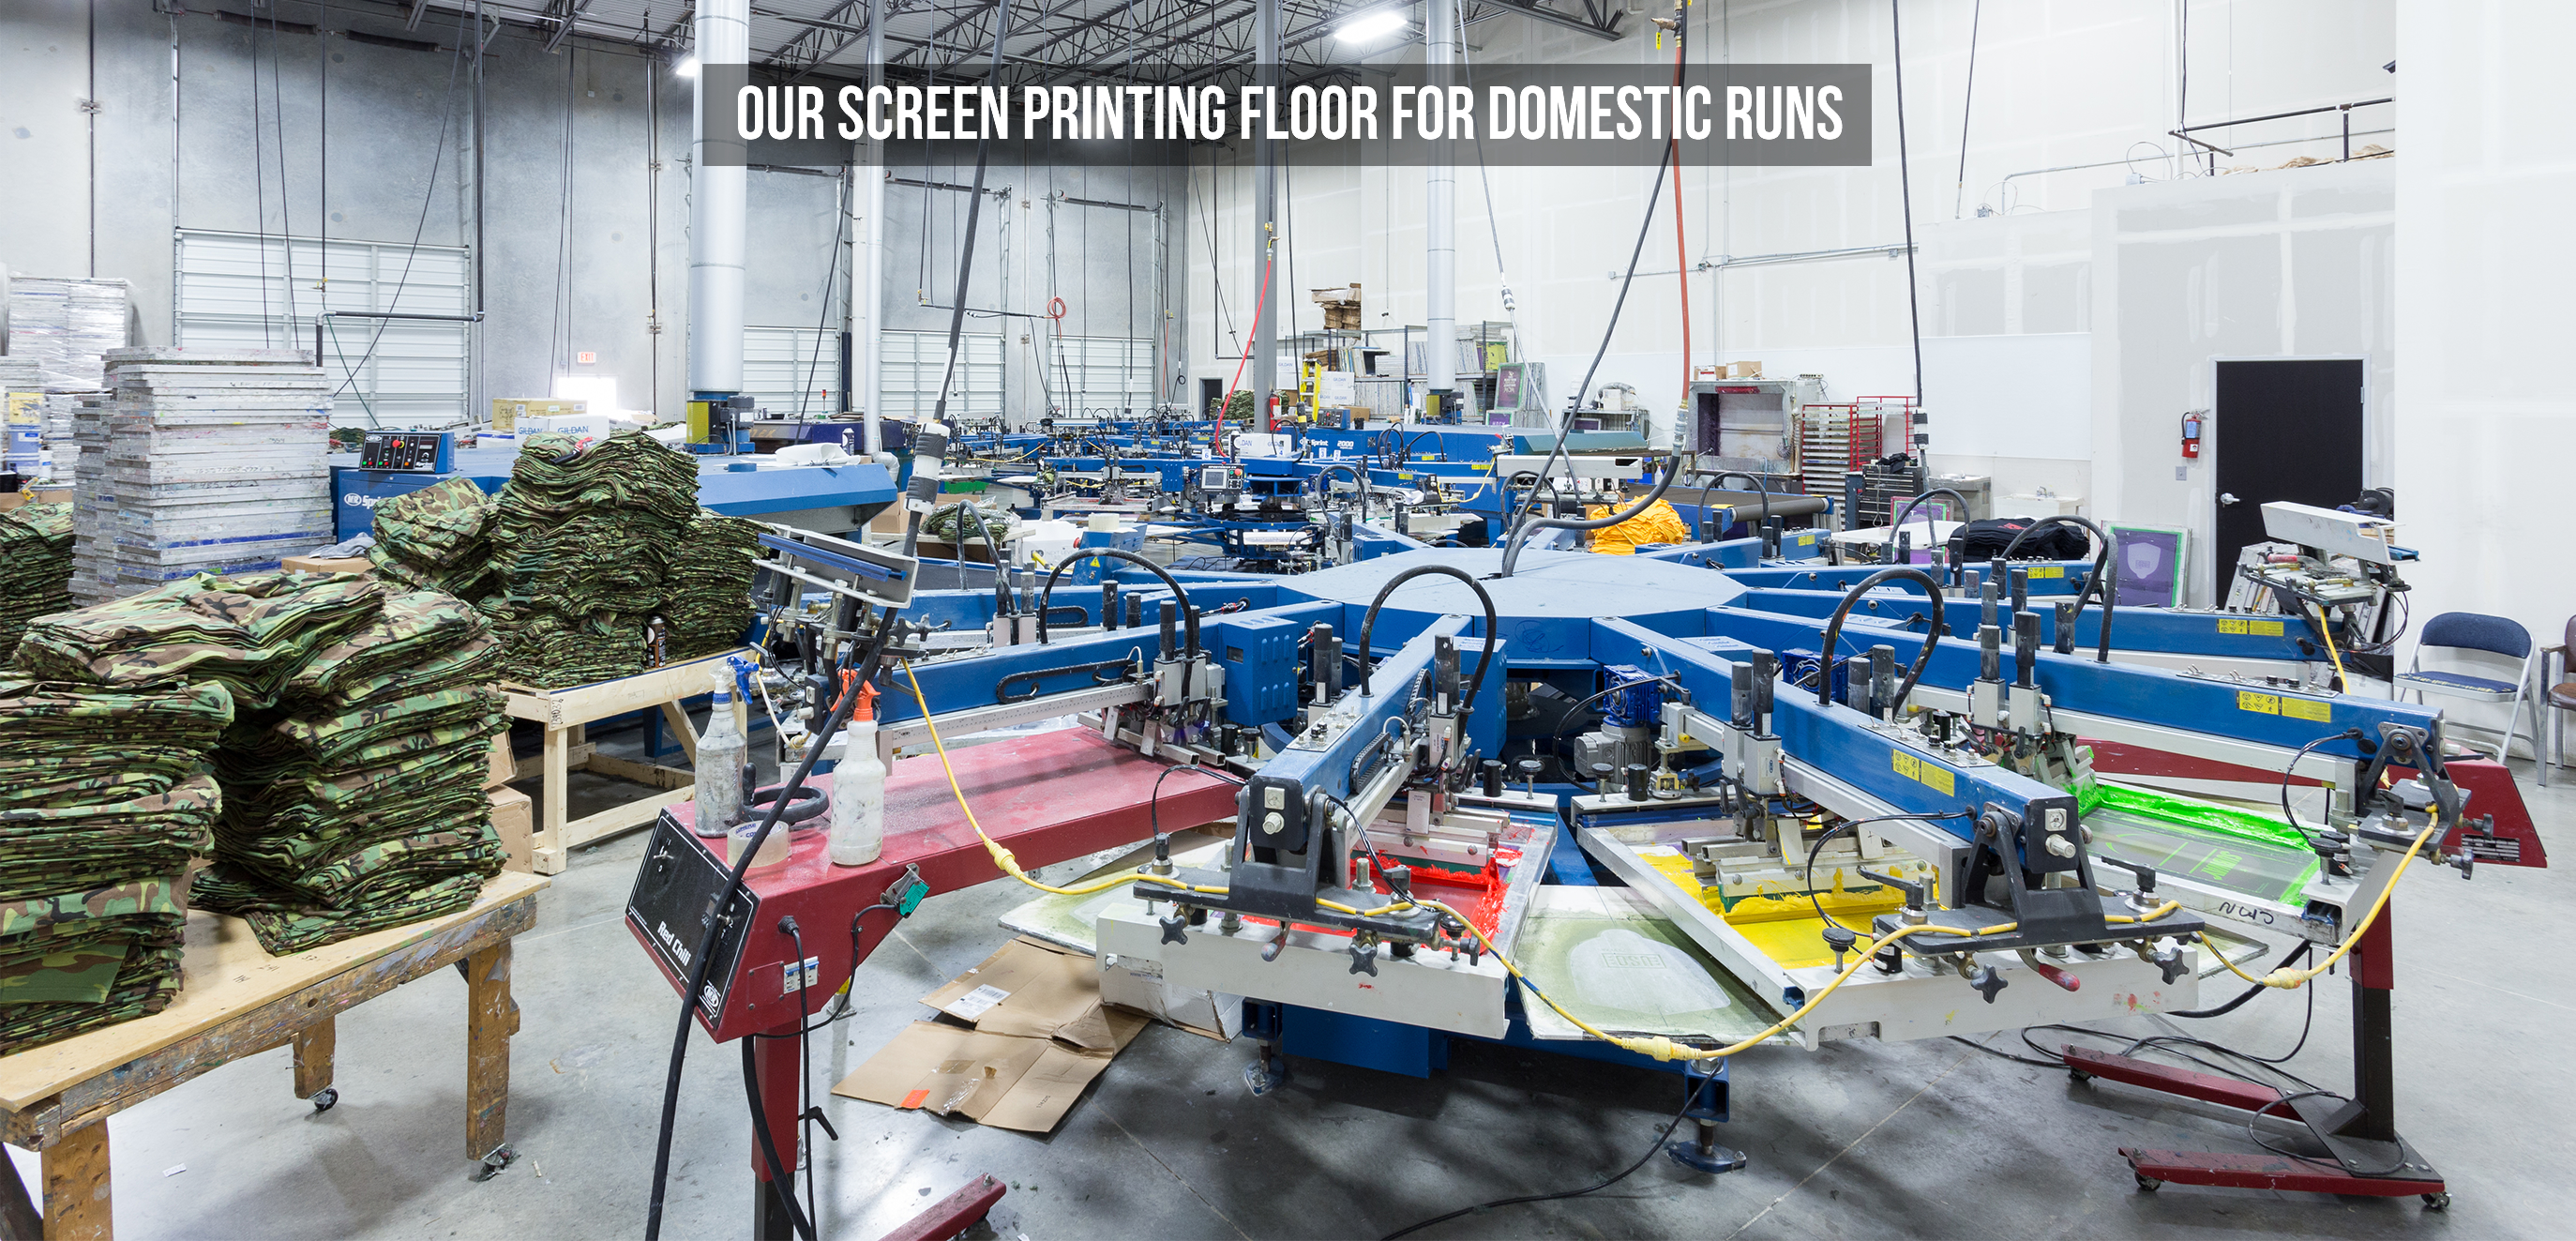 OUR SCREEN PRINTING FLOOR FOR DOMESTIC RUNS